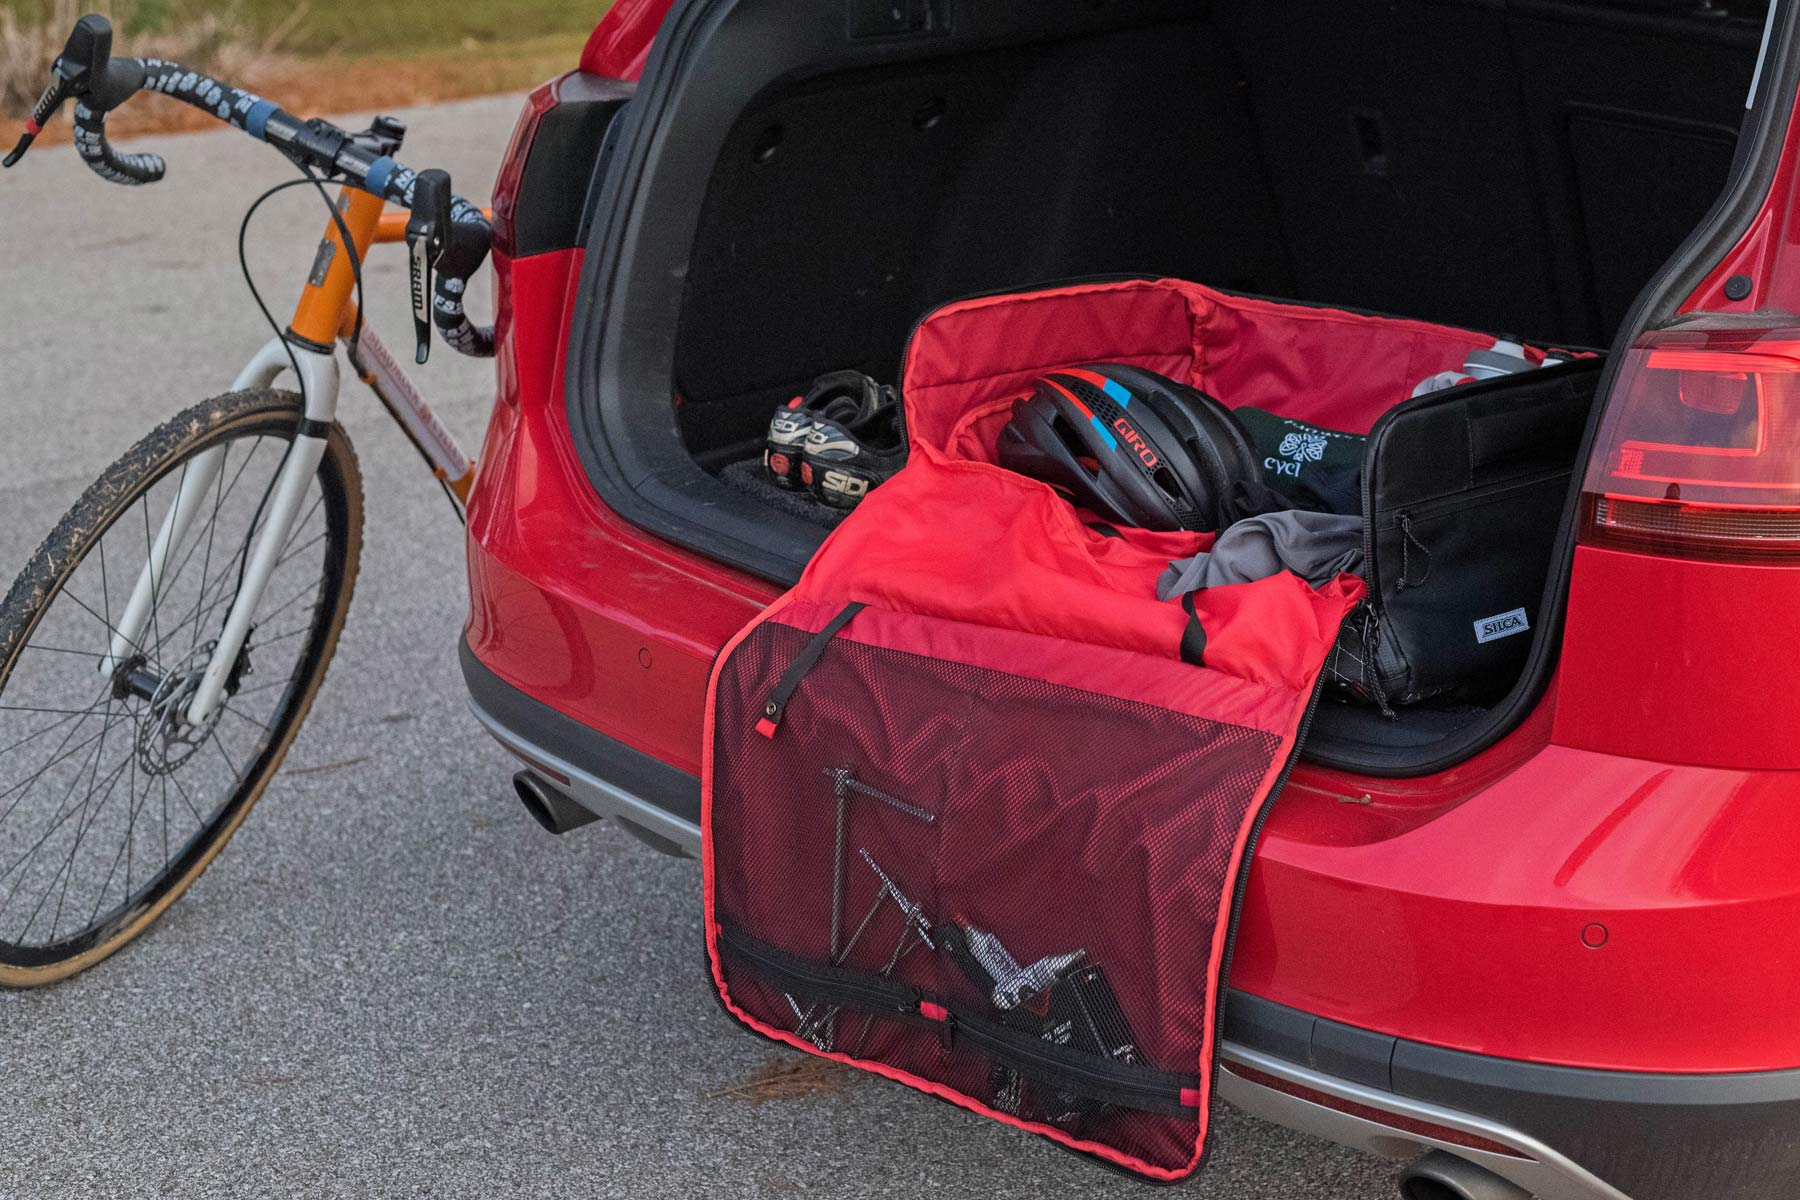 Silca Maratona Gear Bag Packs Up Everything You Need For